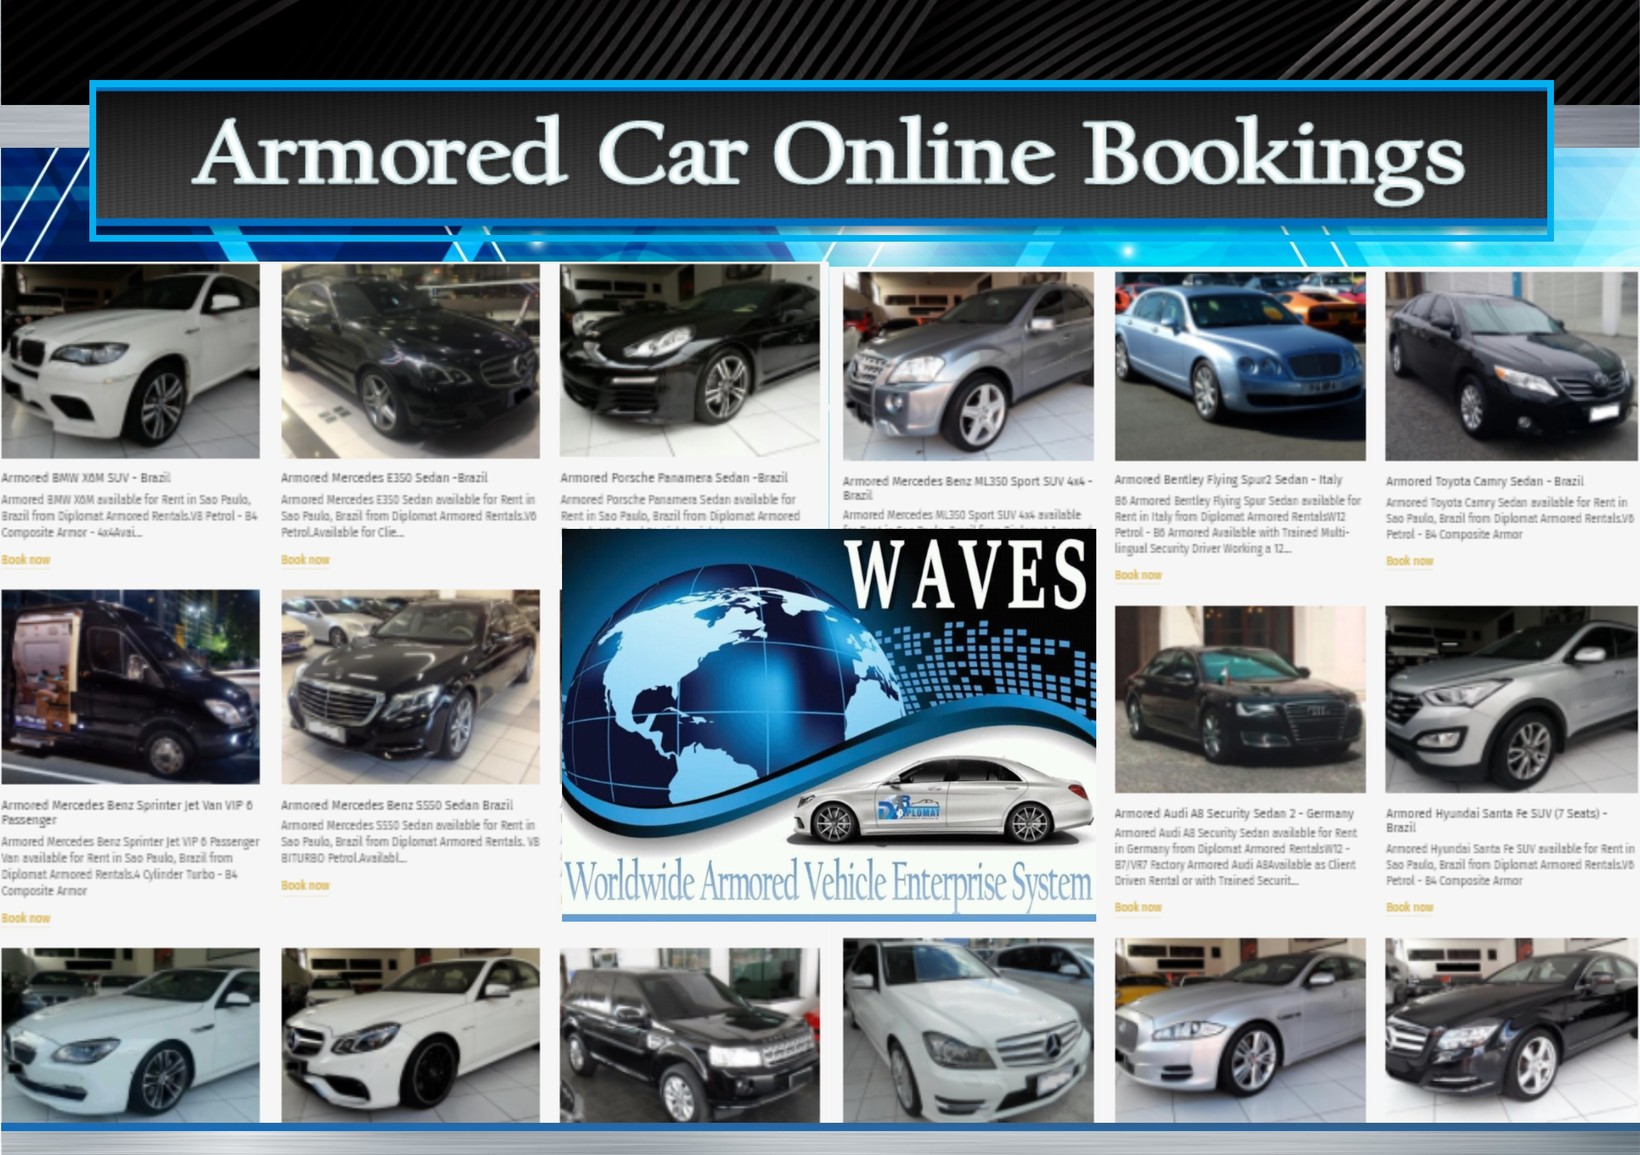 WAVES Worldwide Armored Vehicle Enterprise System